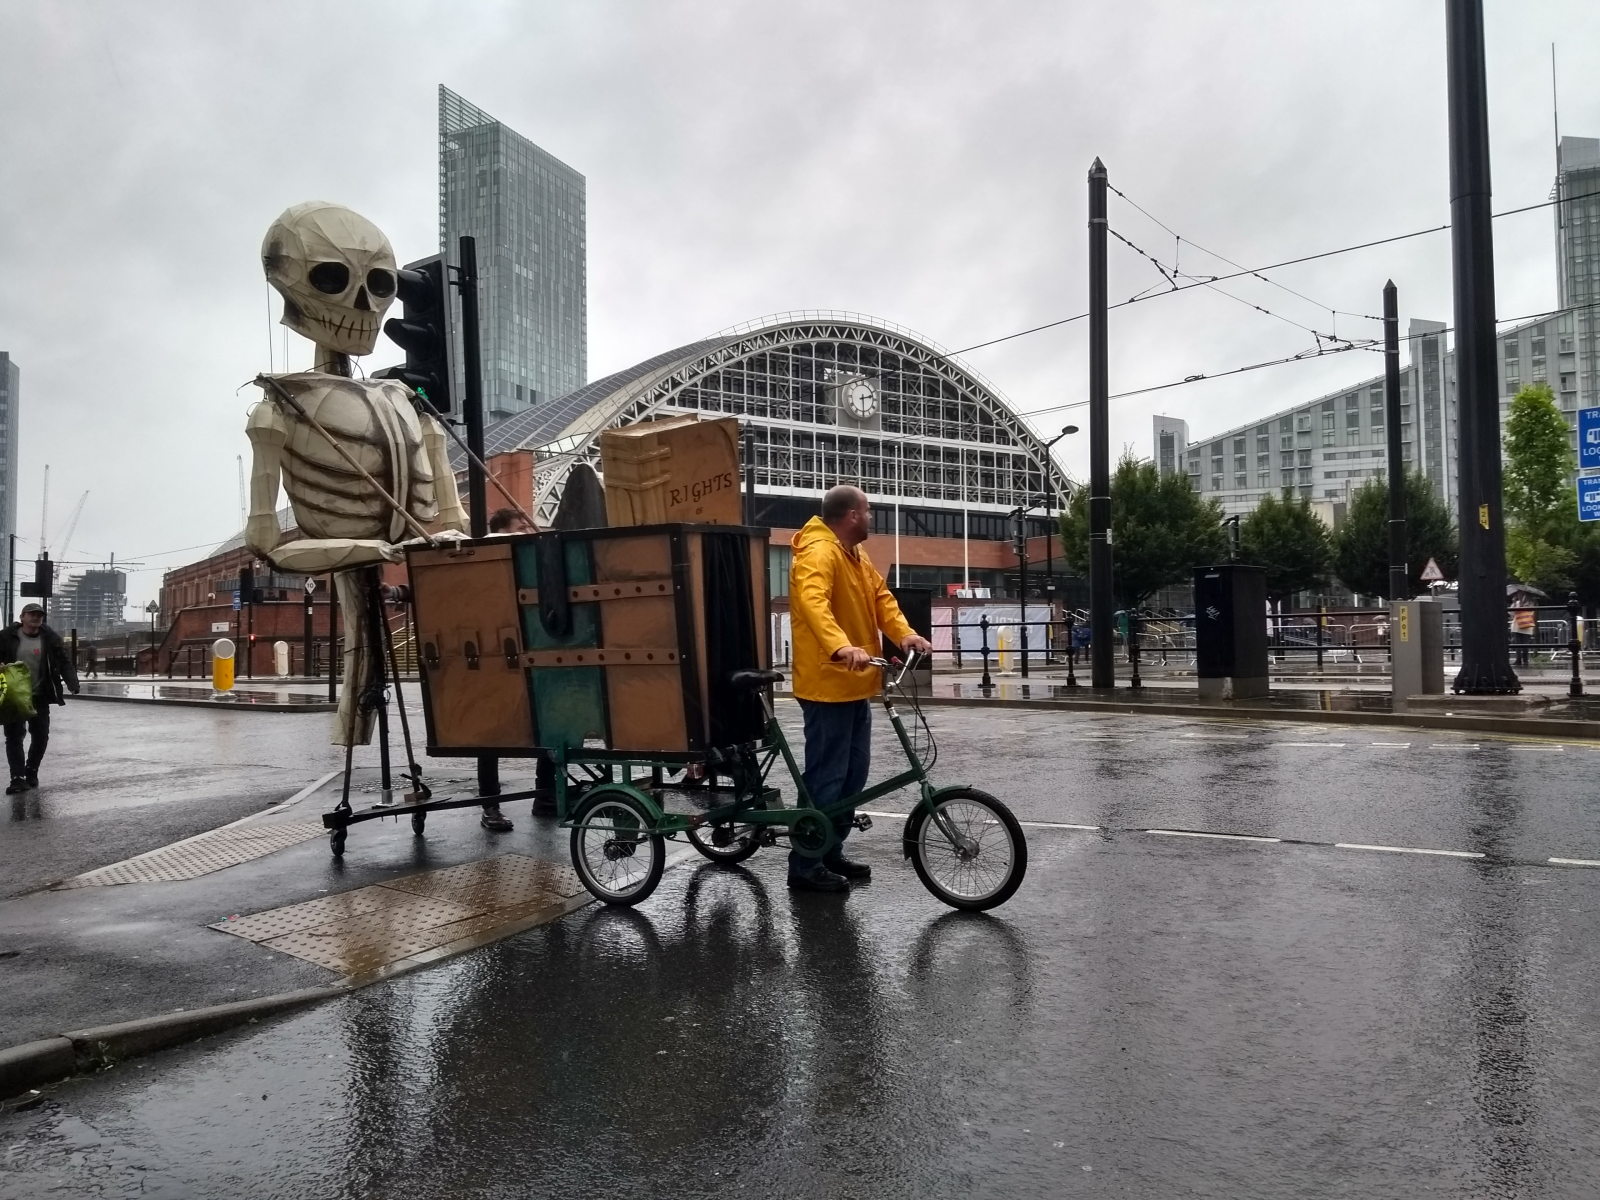 Bones of Paine puppet sighted in Manchester and Salford during Peterloo 200th anniversary weekend – but what does it mean?